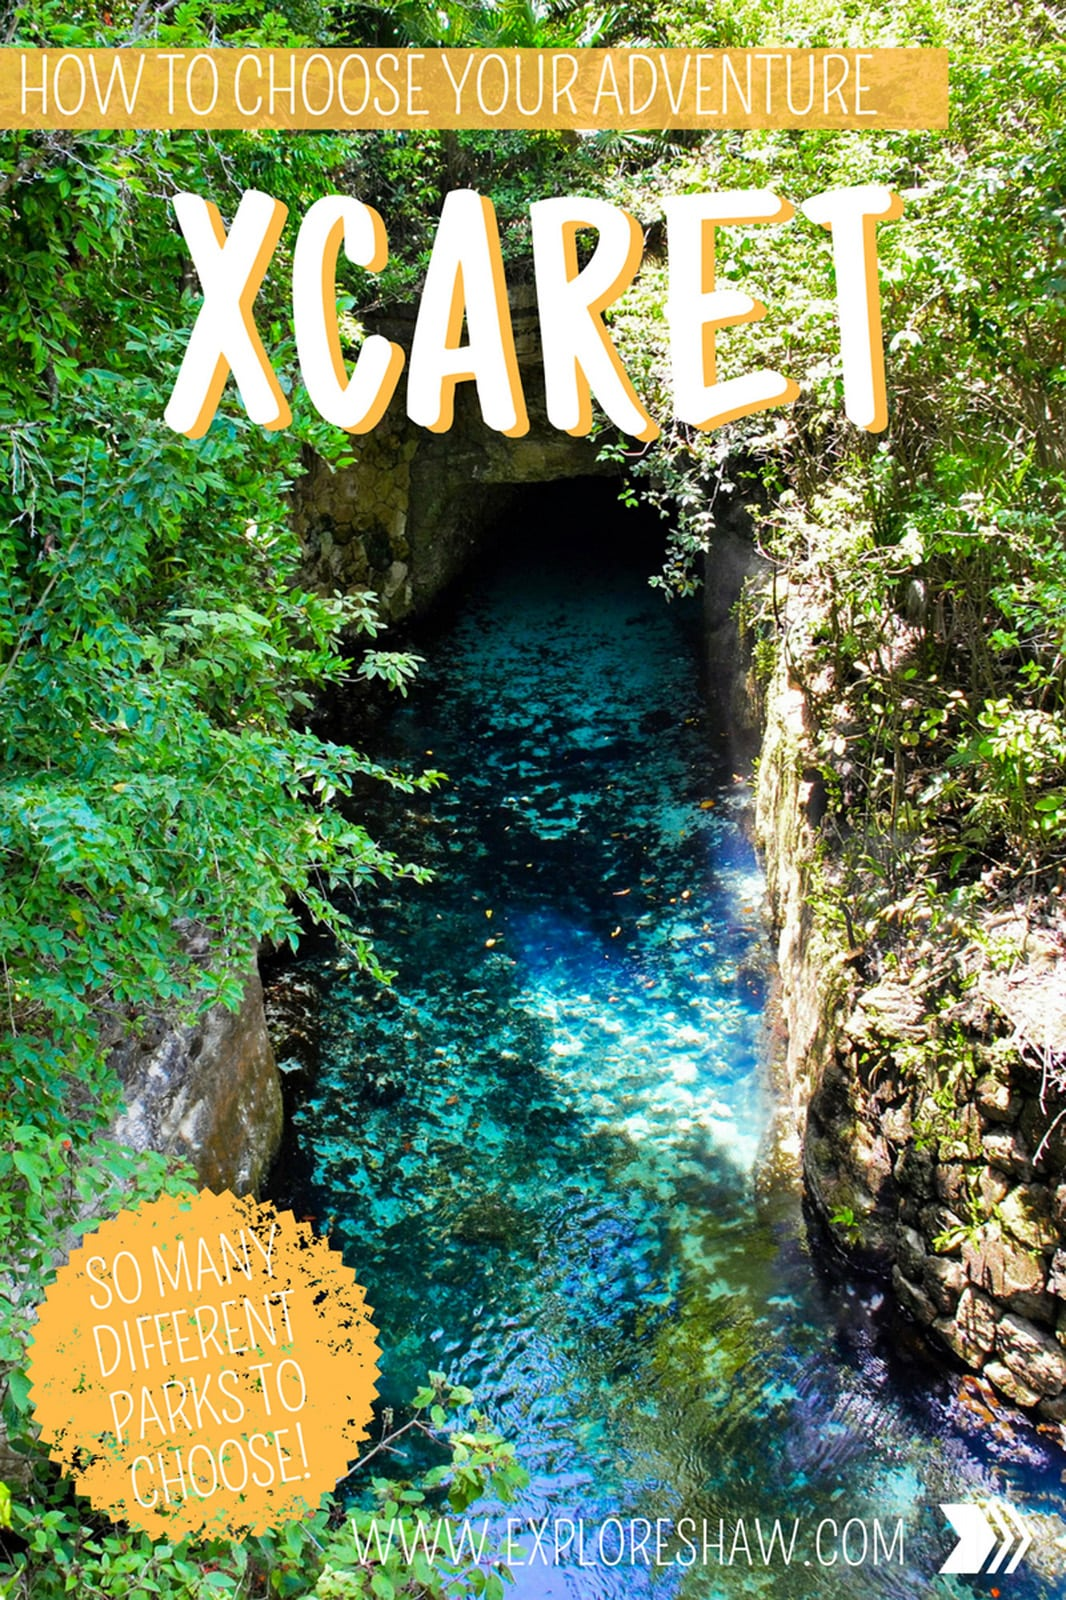 HOW TO CHOOSE YOUR XCARET ADVENTURE